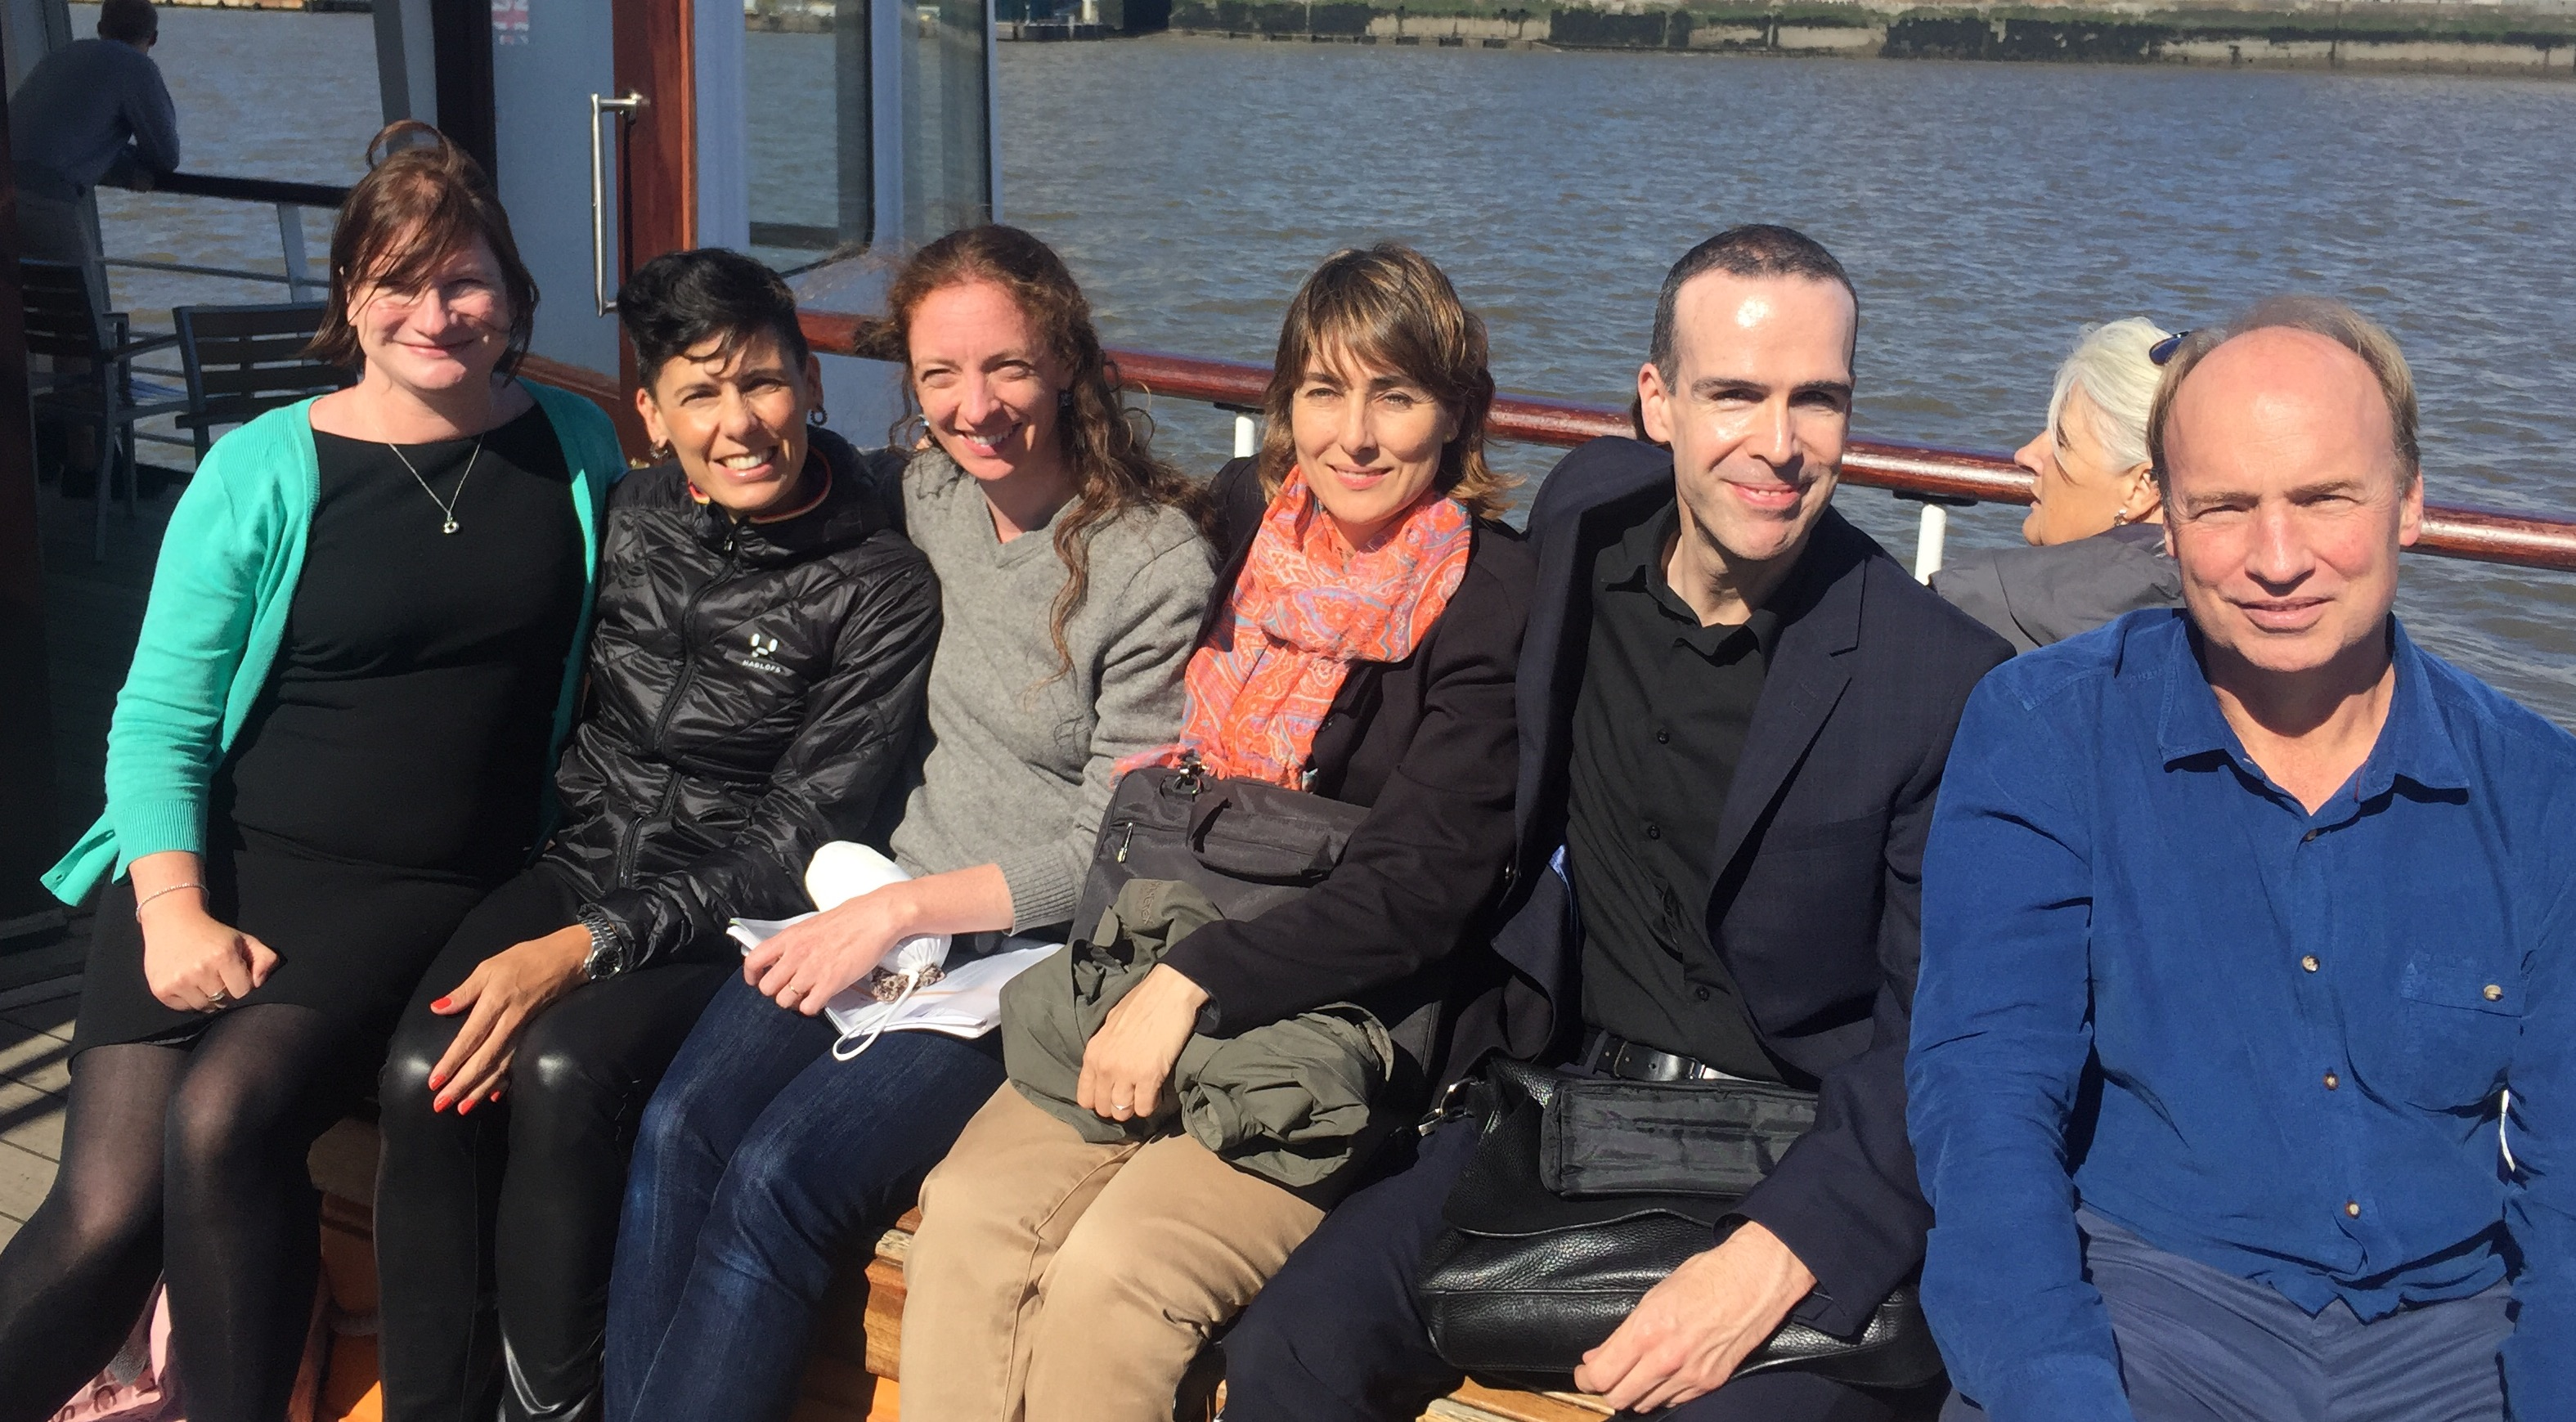 Ferry trip of the participants in the Mersey river